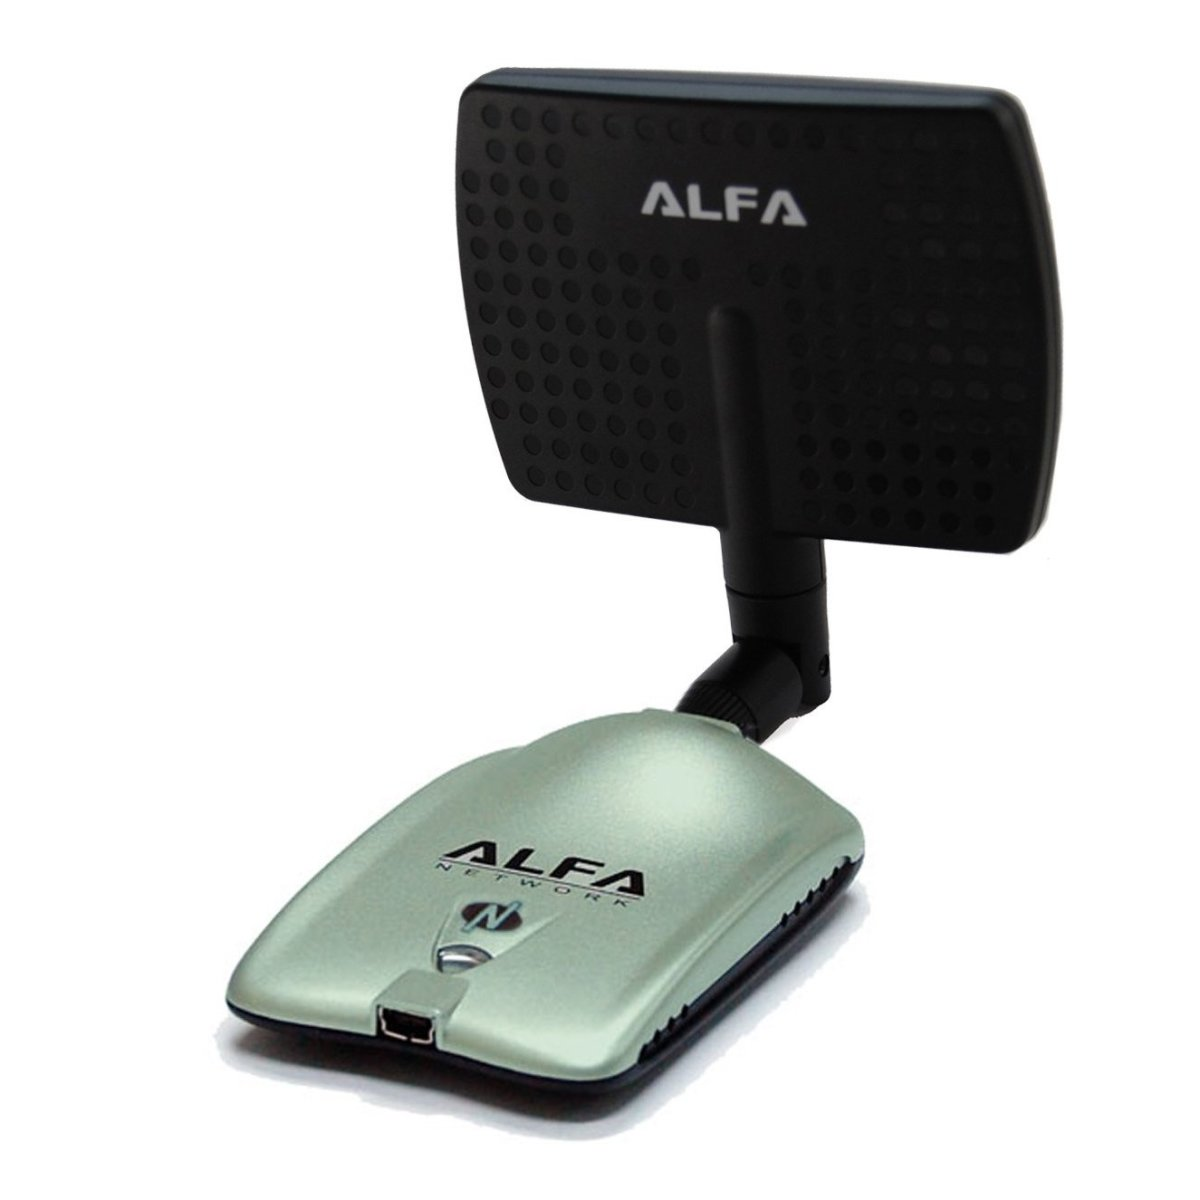 The Alfa AWUS036NH 2000mW with 7dbi flat panel antenna